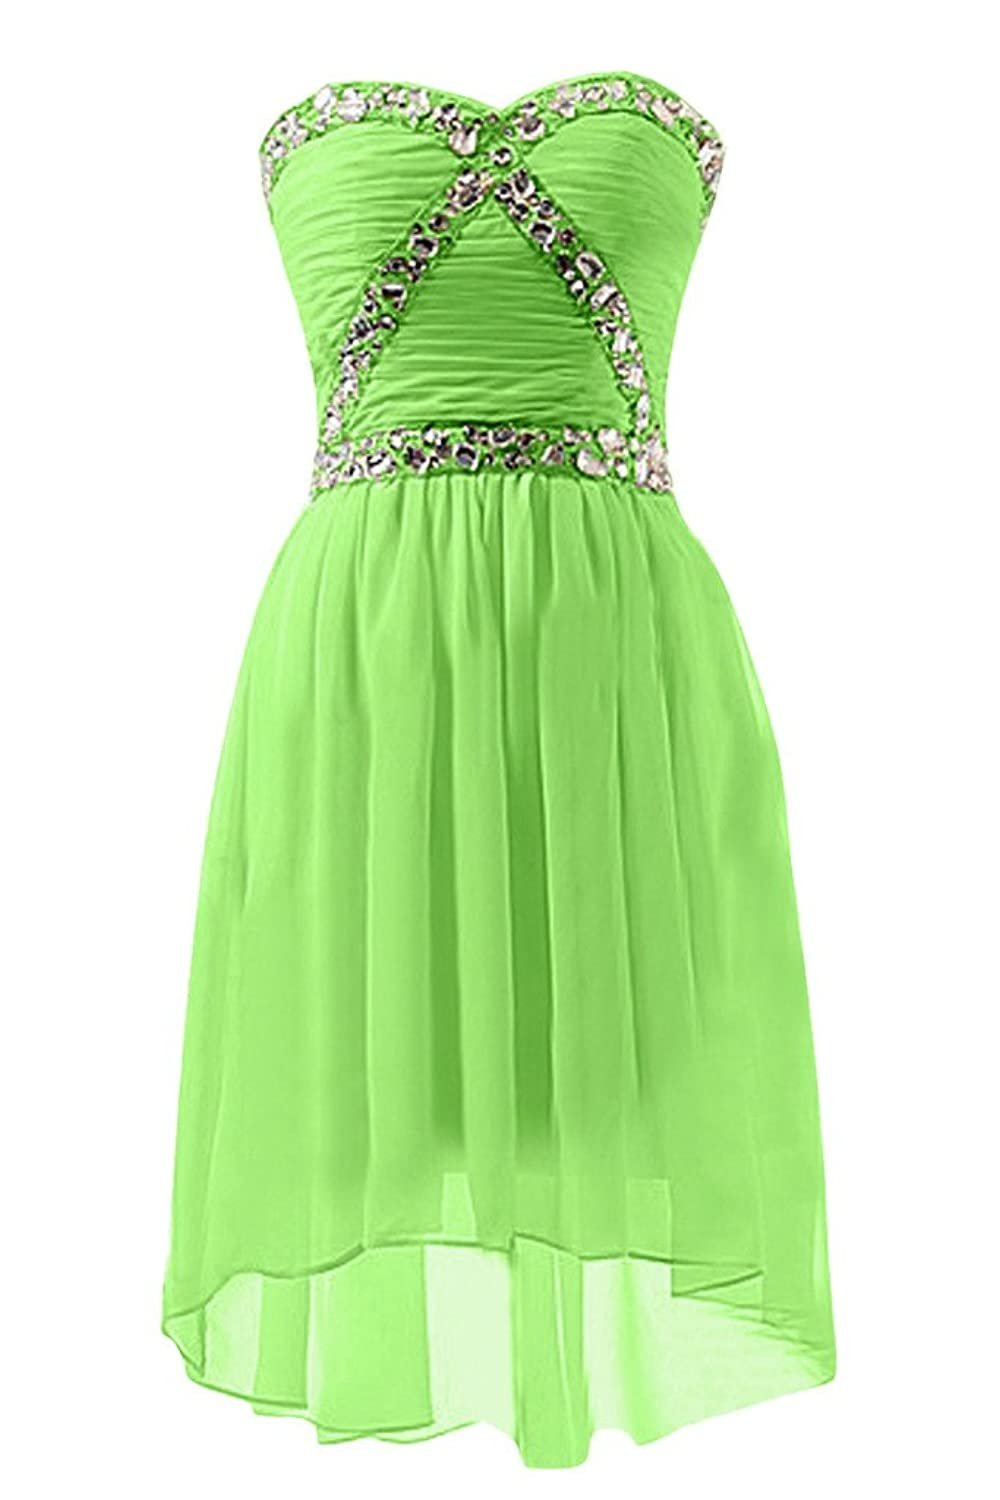 Sunvary Romantic A-Line Sweetheart Folded Cocktail Dresses Party Gowns Homecoming Dress